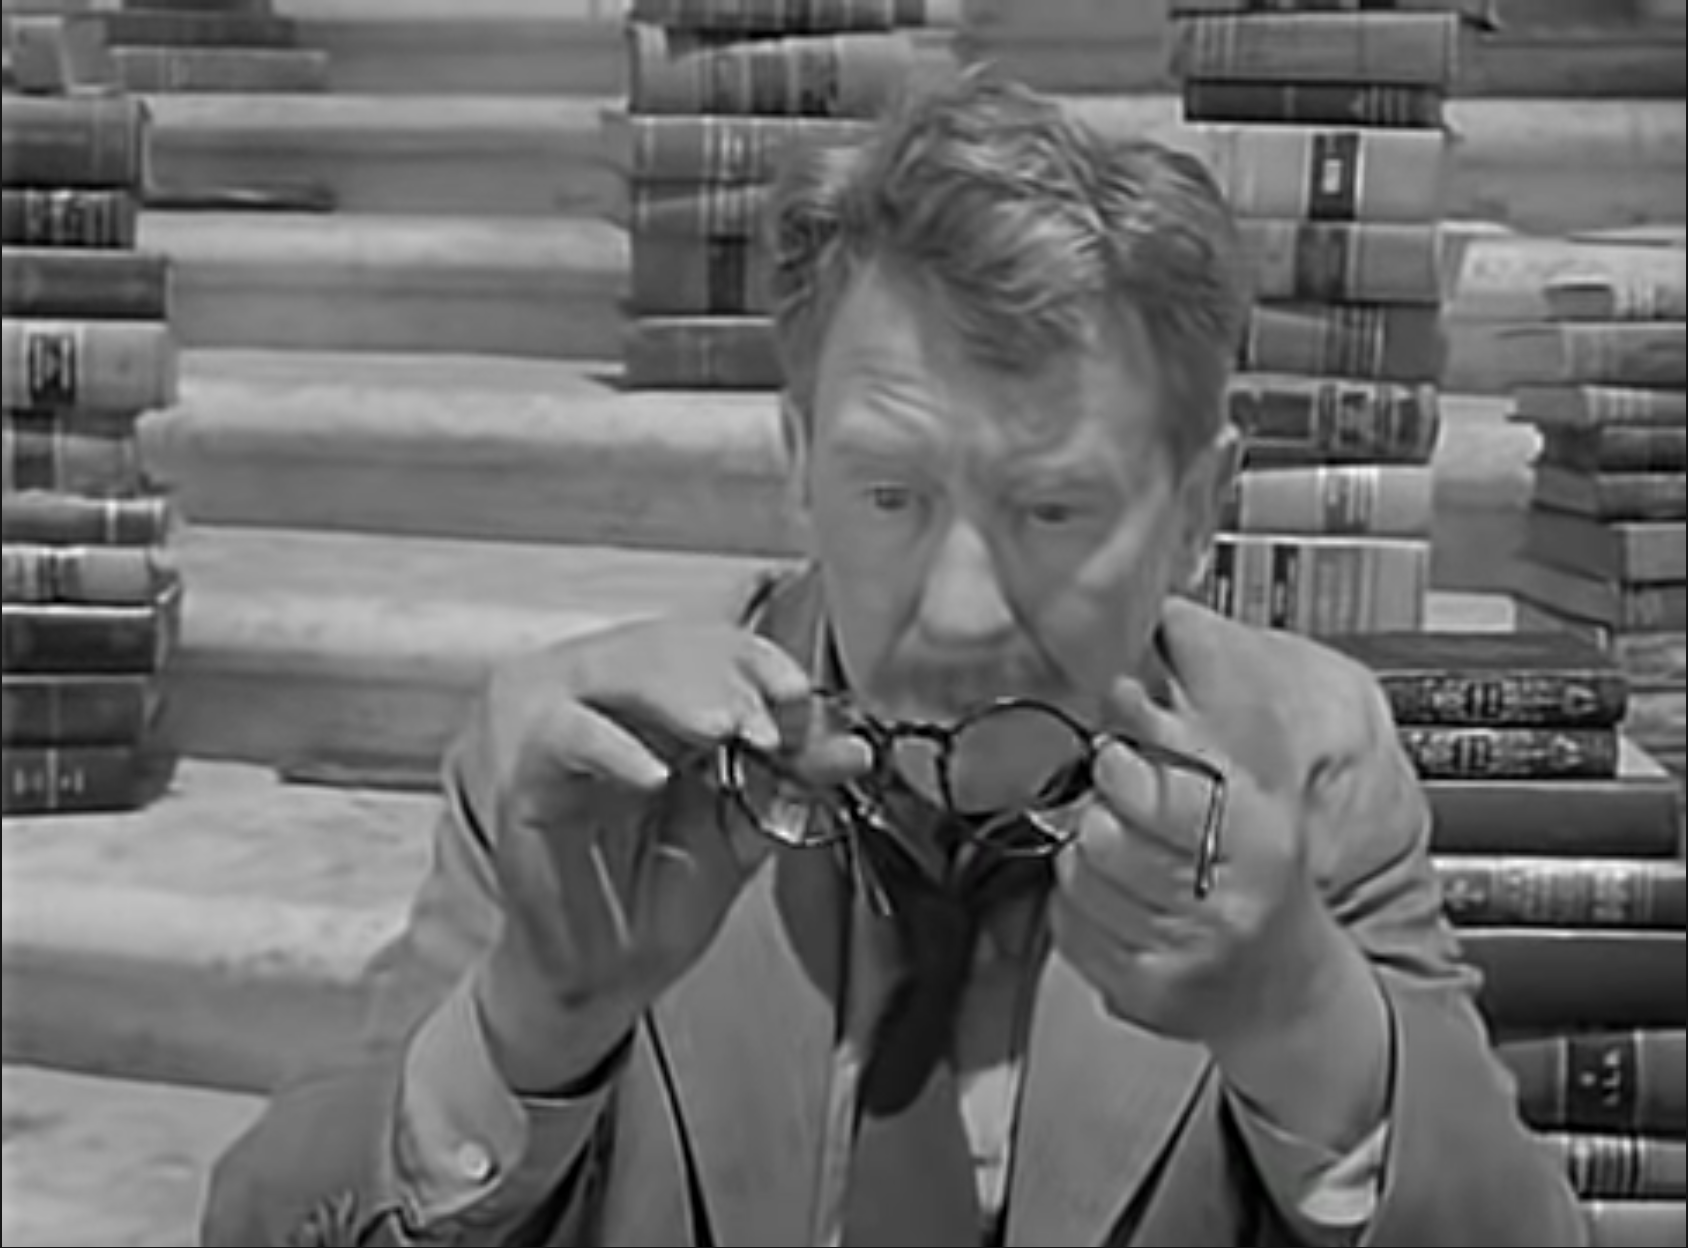 """Screenshot of 1959's Twilight Zone episode """"Time Enough at Last"""", showing Henry Bemis holding his broken glasses amid books."""